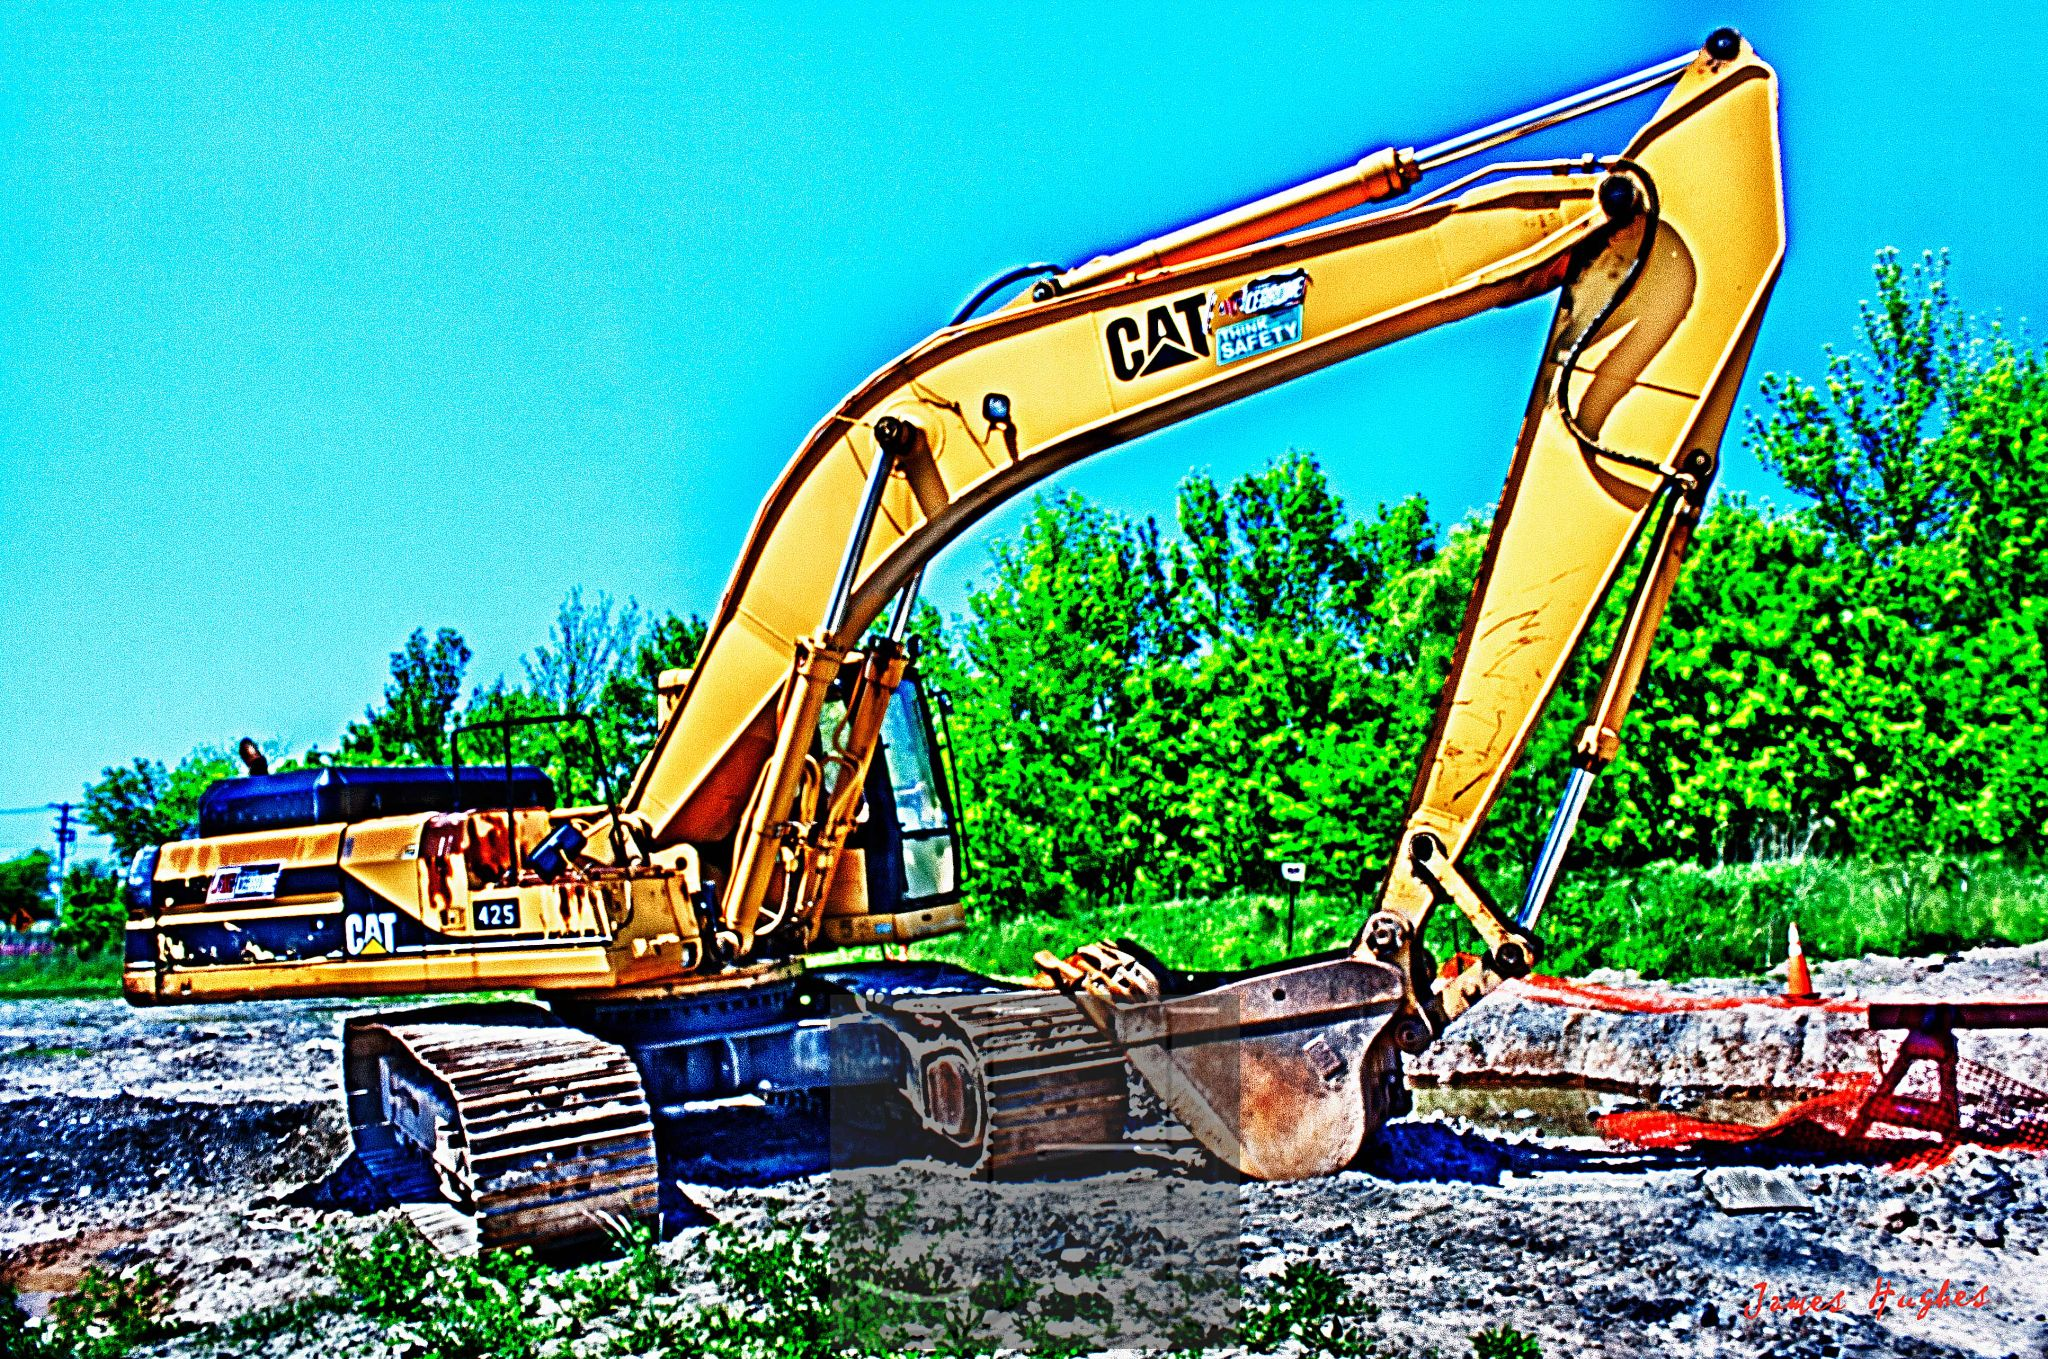 Backhoe 1 by James Hughes Photography